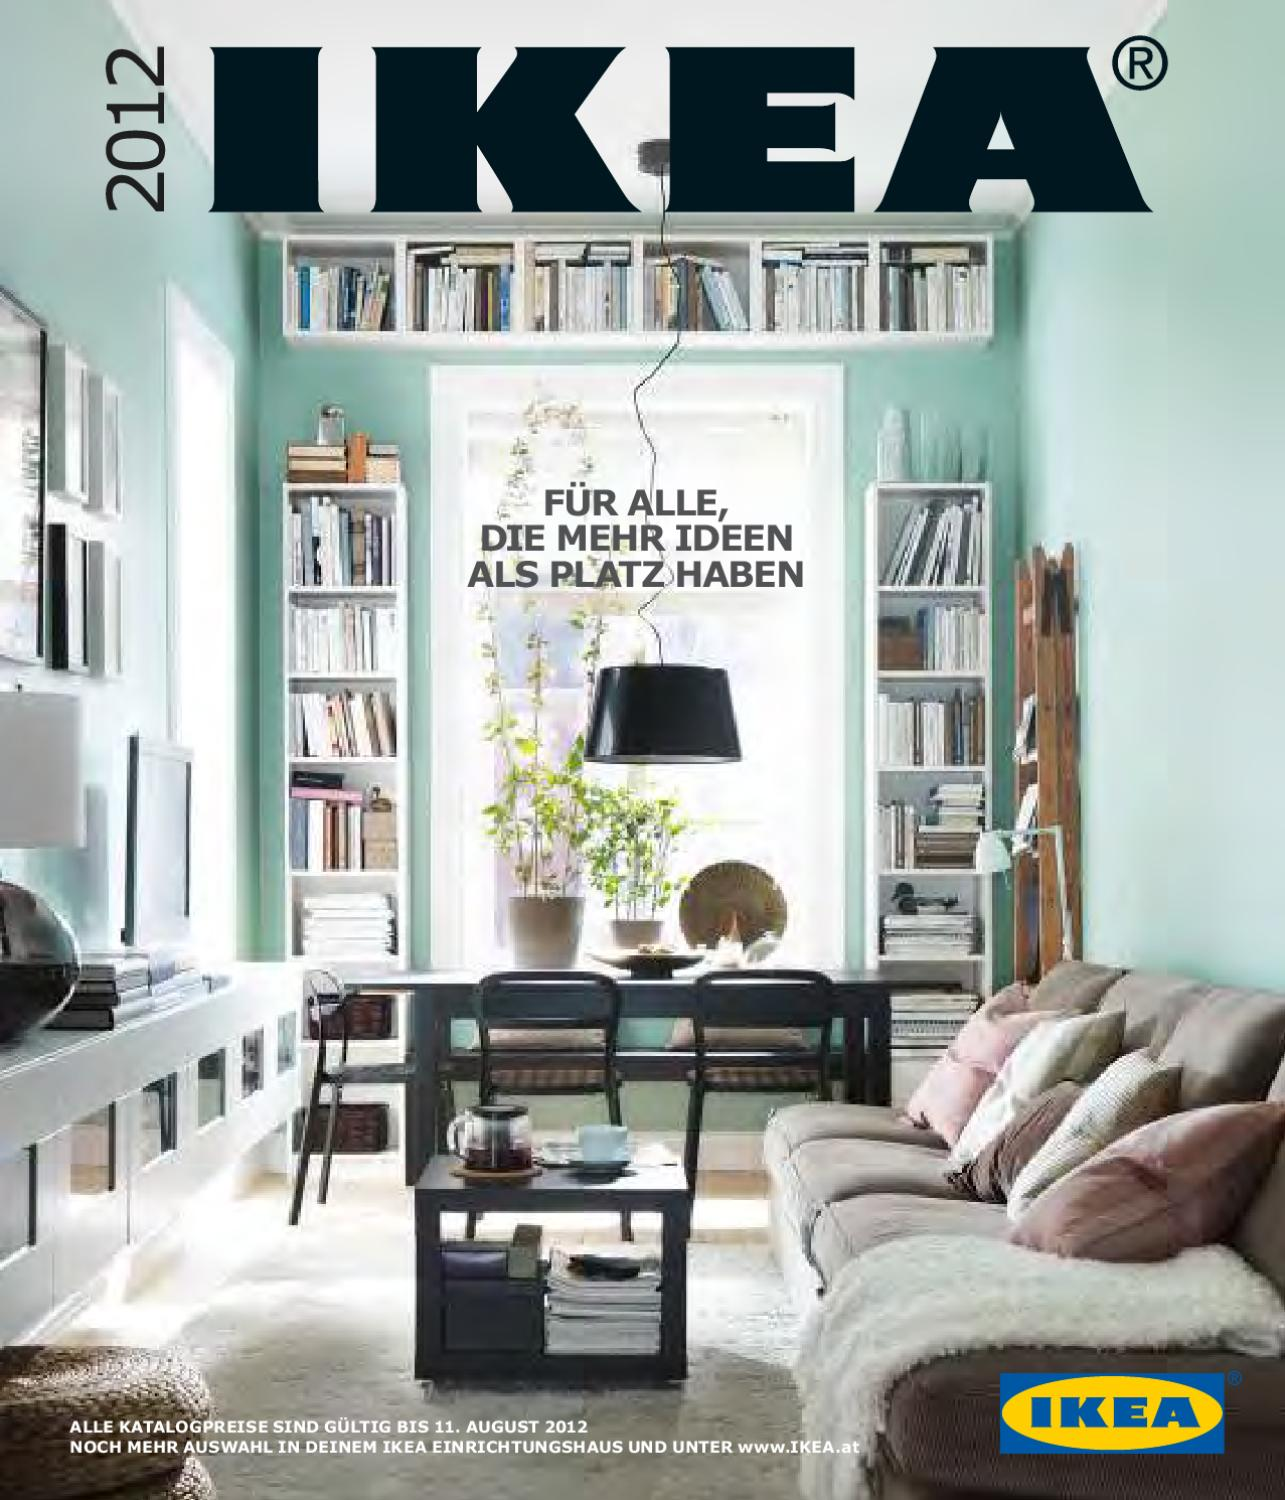 Ikea Katalog 20 11 11 08 2012 By Aktionsfinder Gmbh Issuu